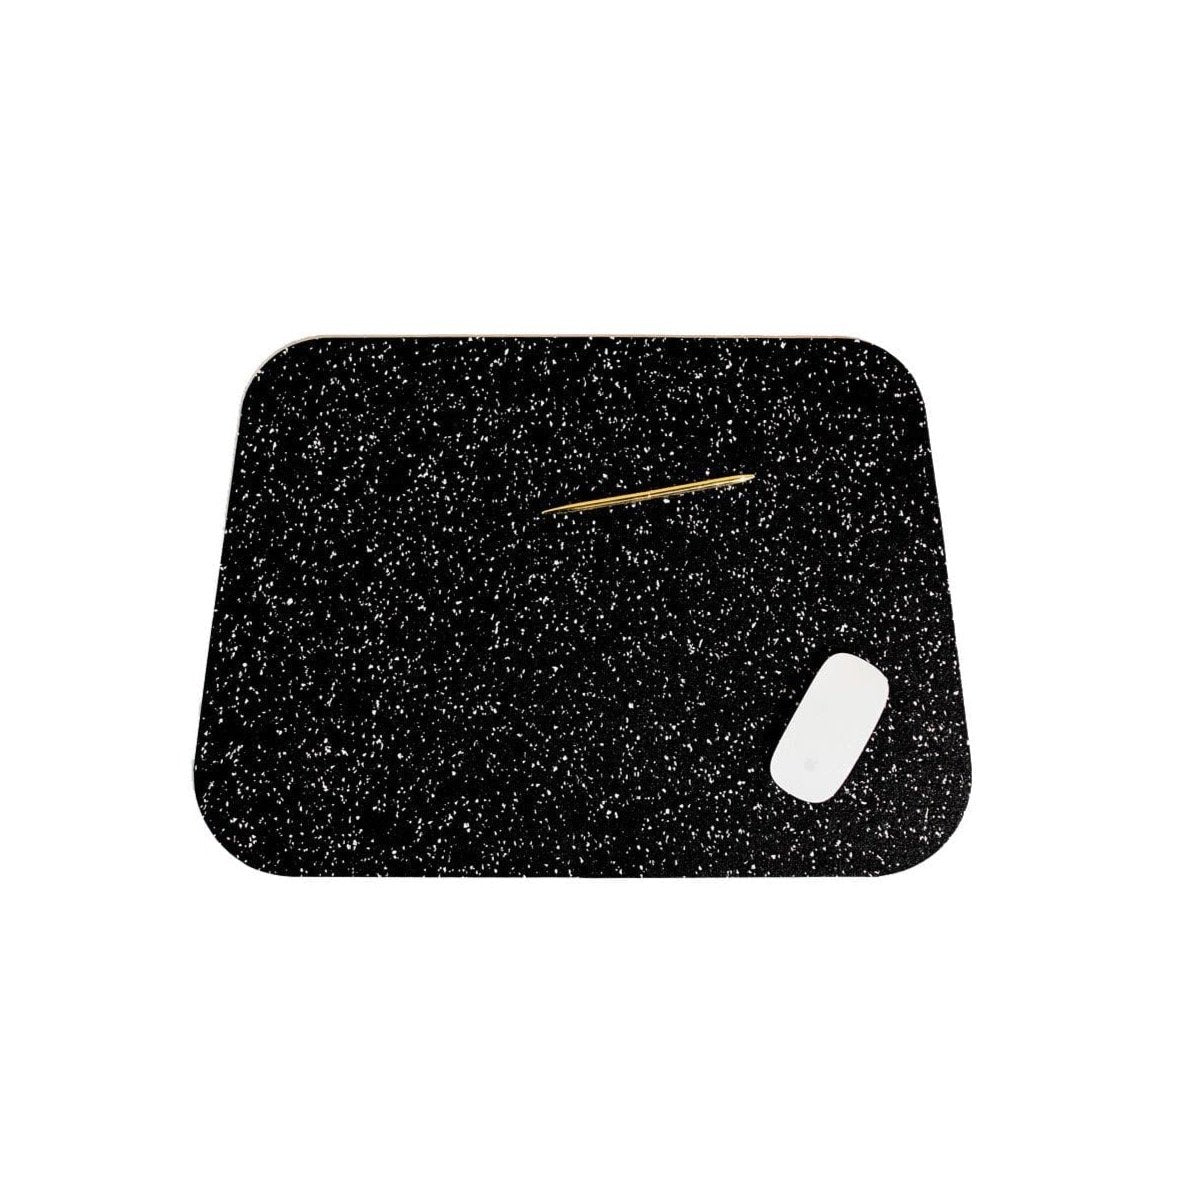 Slash Objects Desk Accessories Speckled Black R2 Deskmat